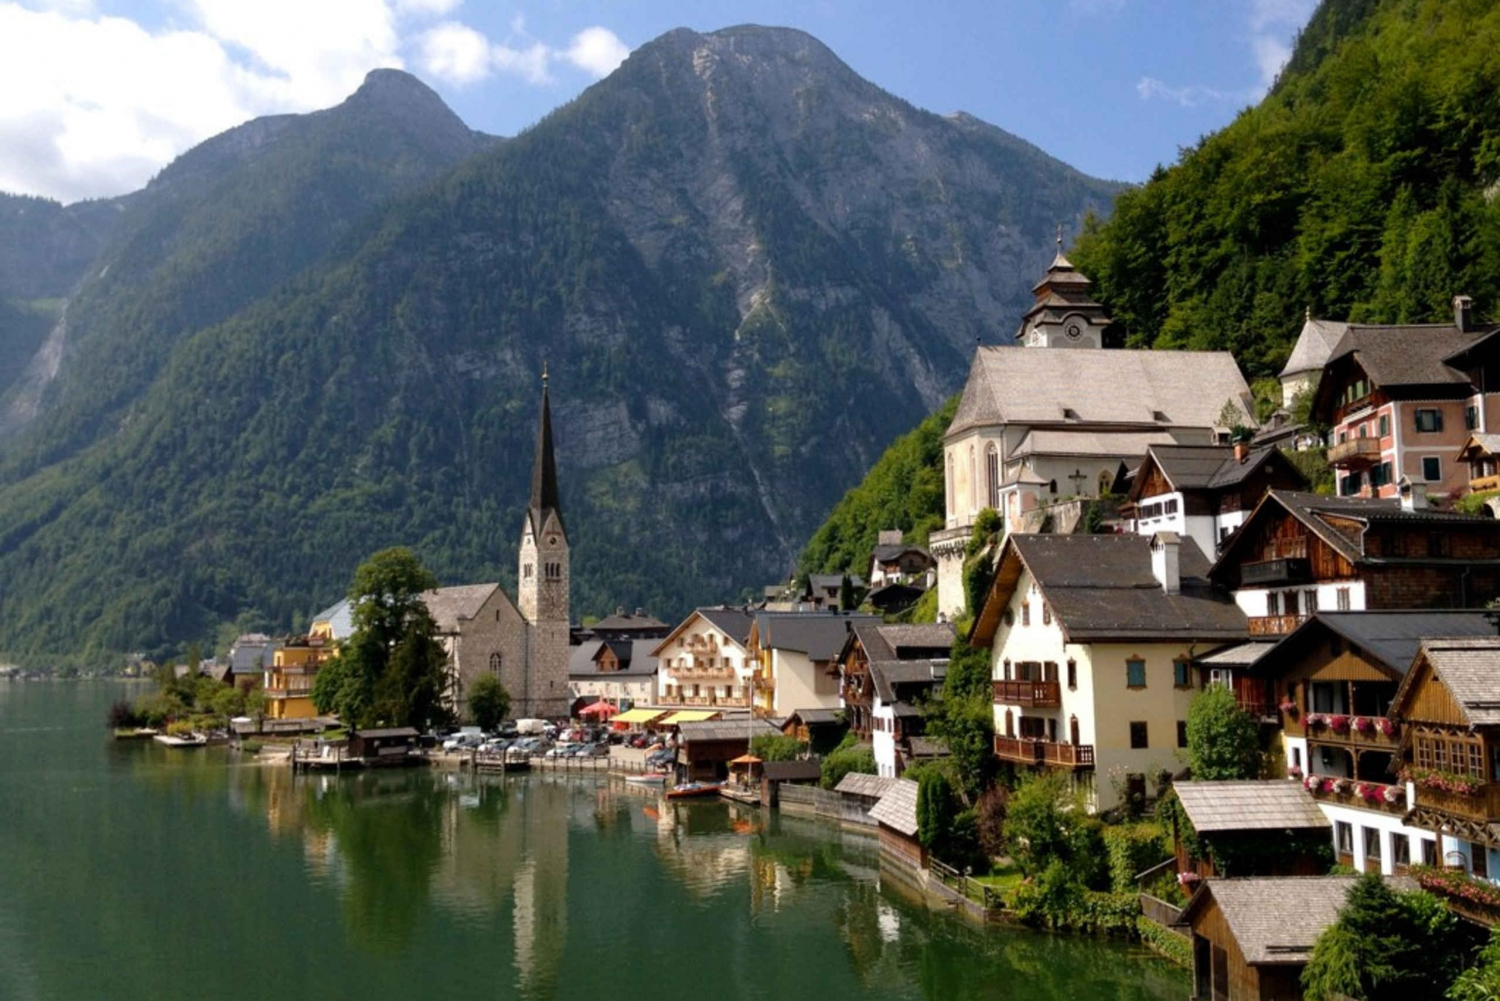 Private Day Trip to Hallstatt including Beautiful Alps